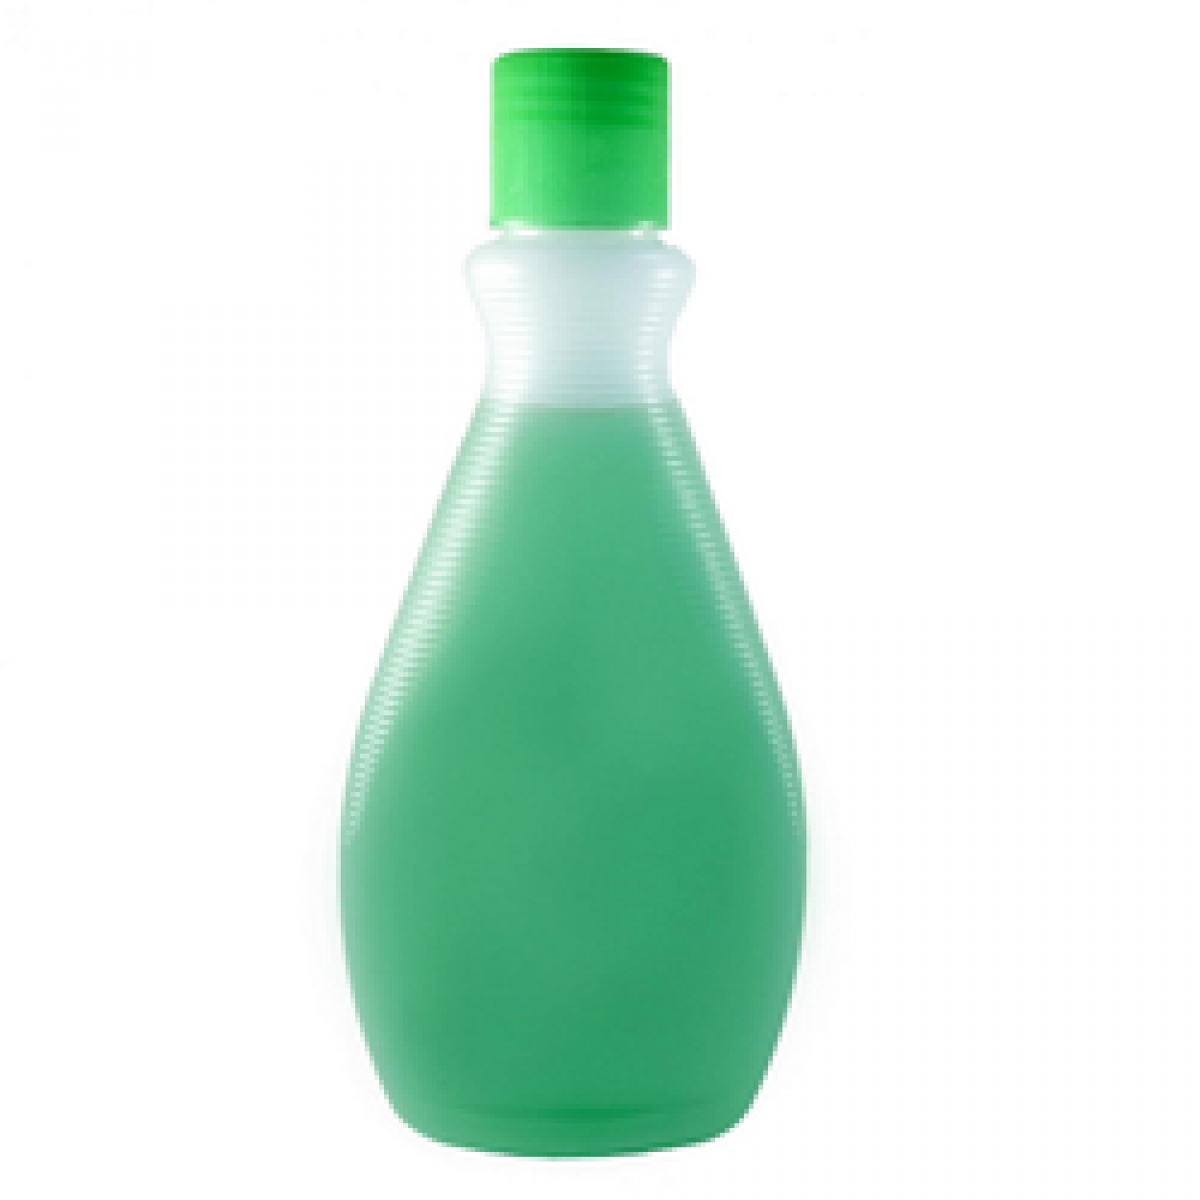 Multipurpose Liquid Soap for dishes and cleaning image